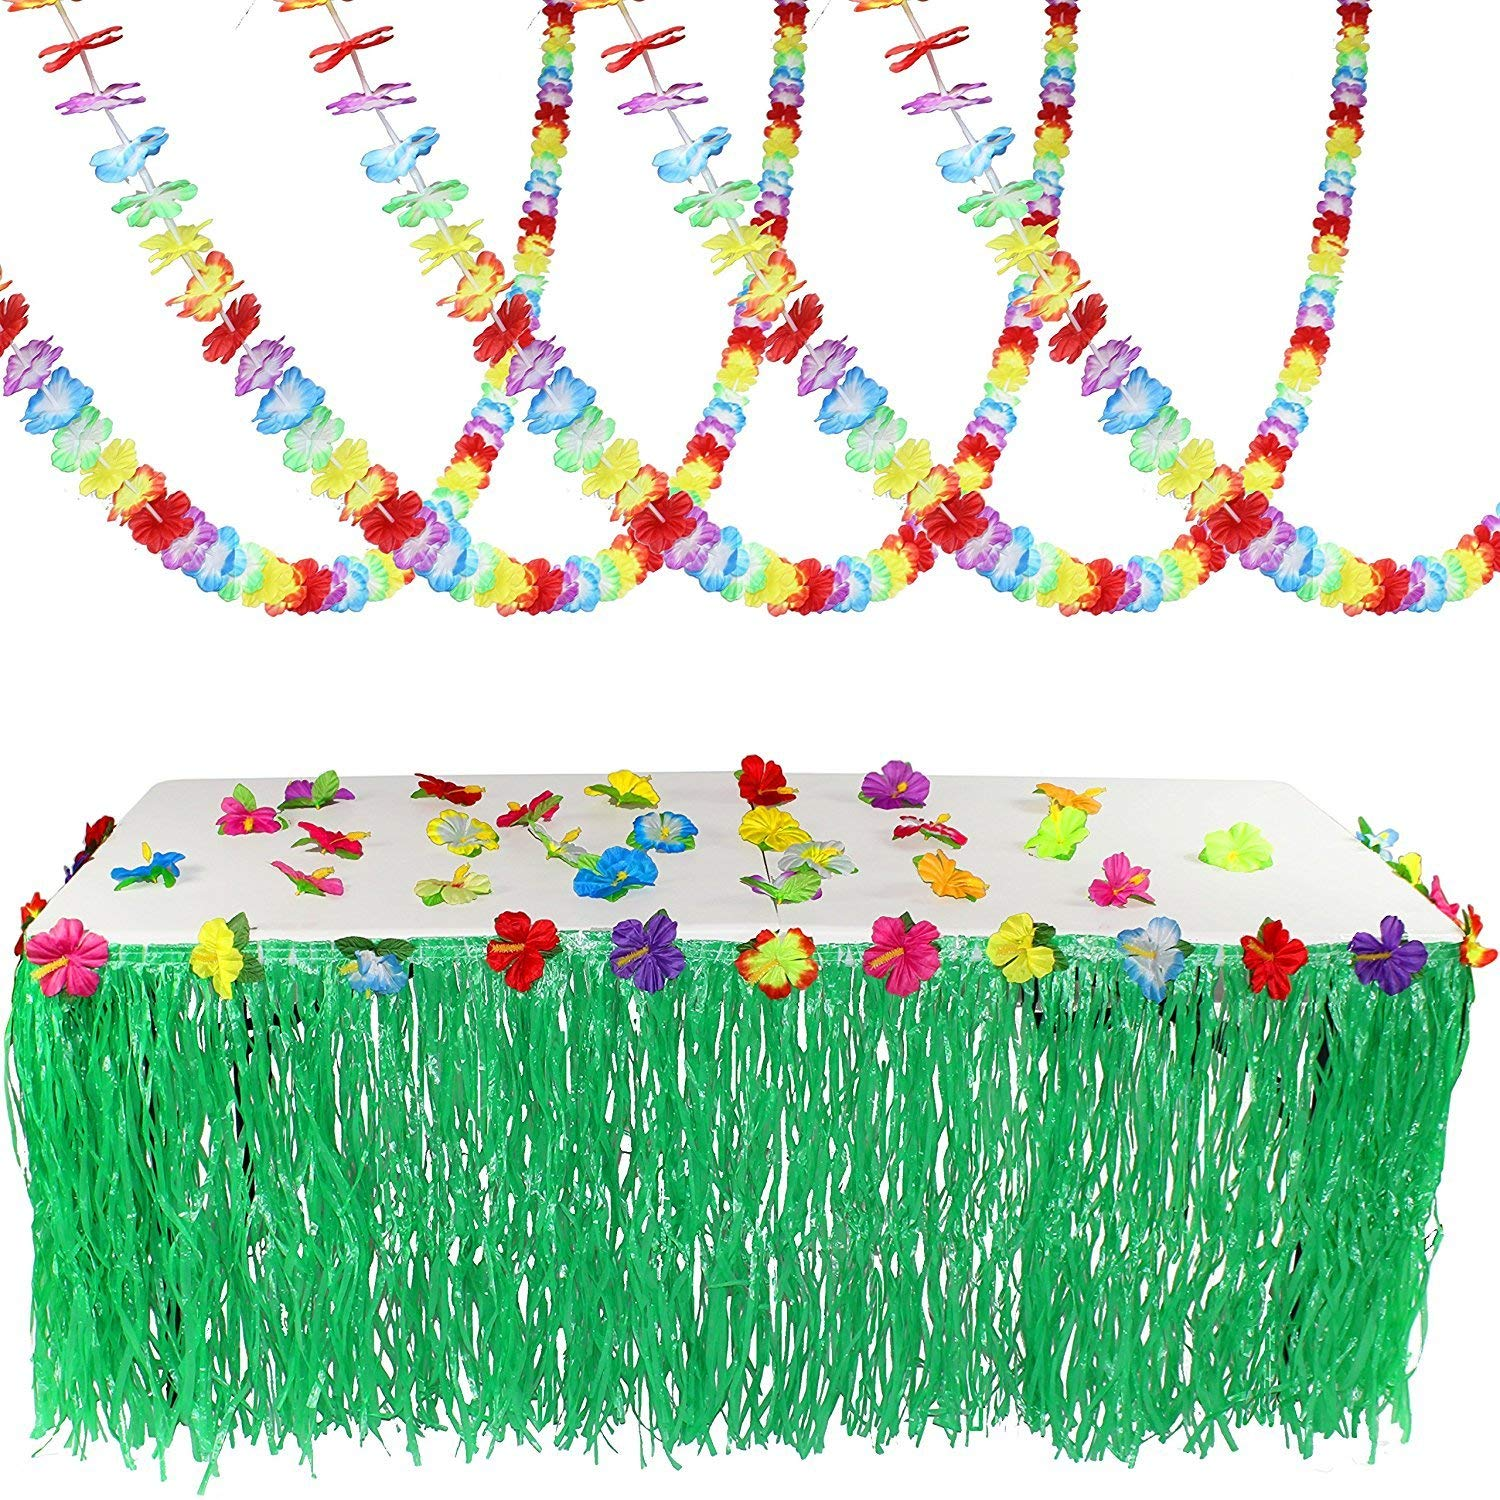 Luau Tropical Hawaiian Party Decoration Set Including 100 ft Flower Lei Garland, 36 Hibiscus Flowers and 9 ft Luau Table Skirt